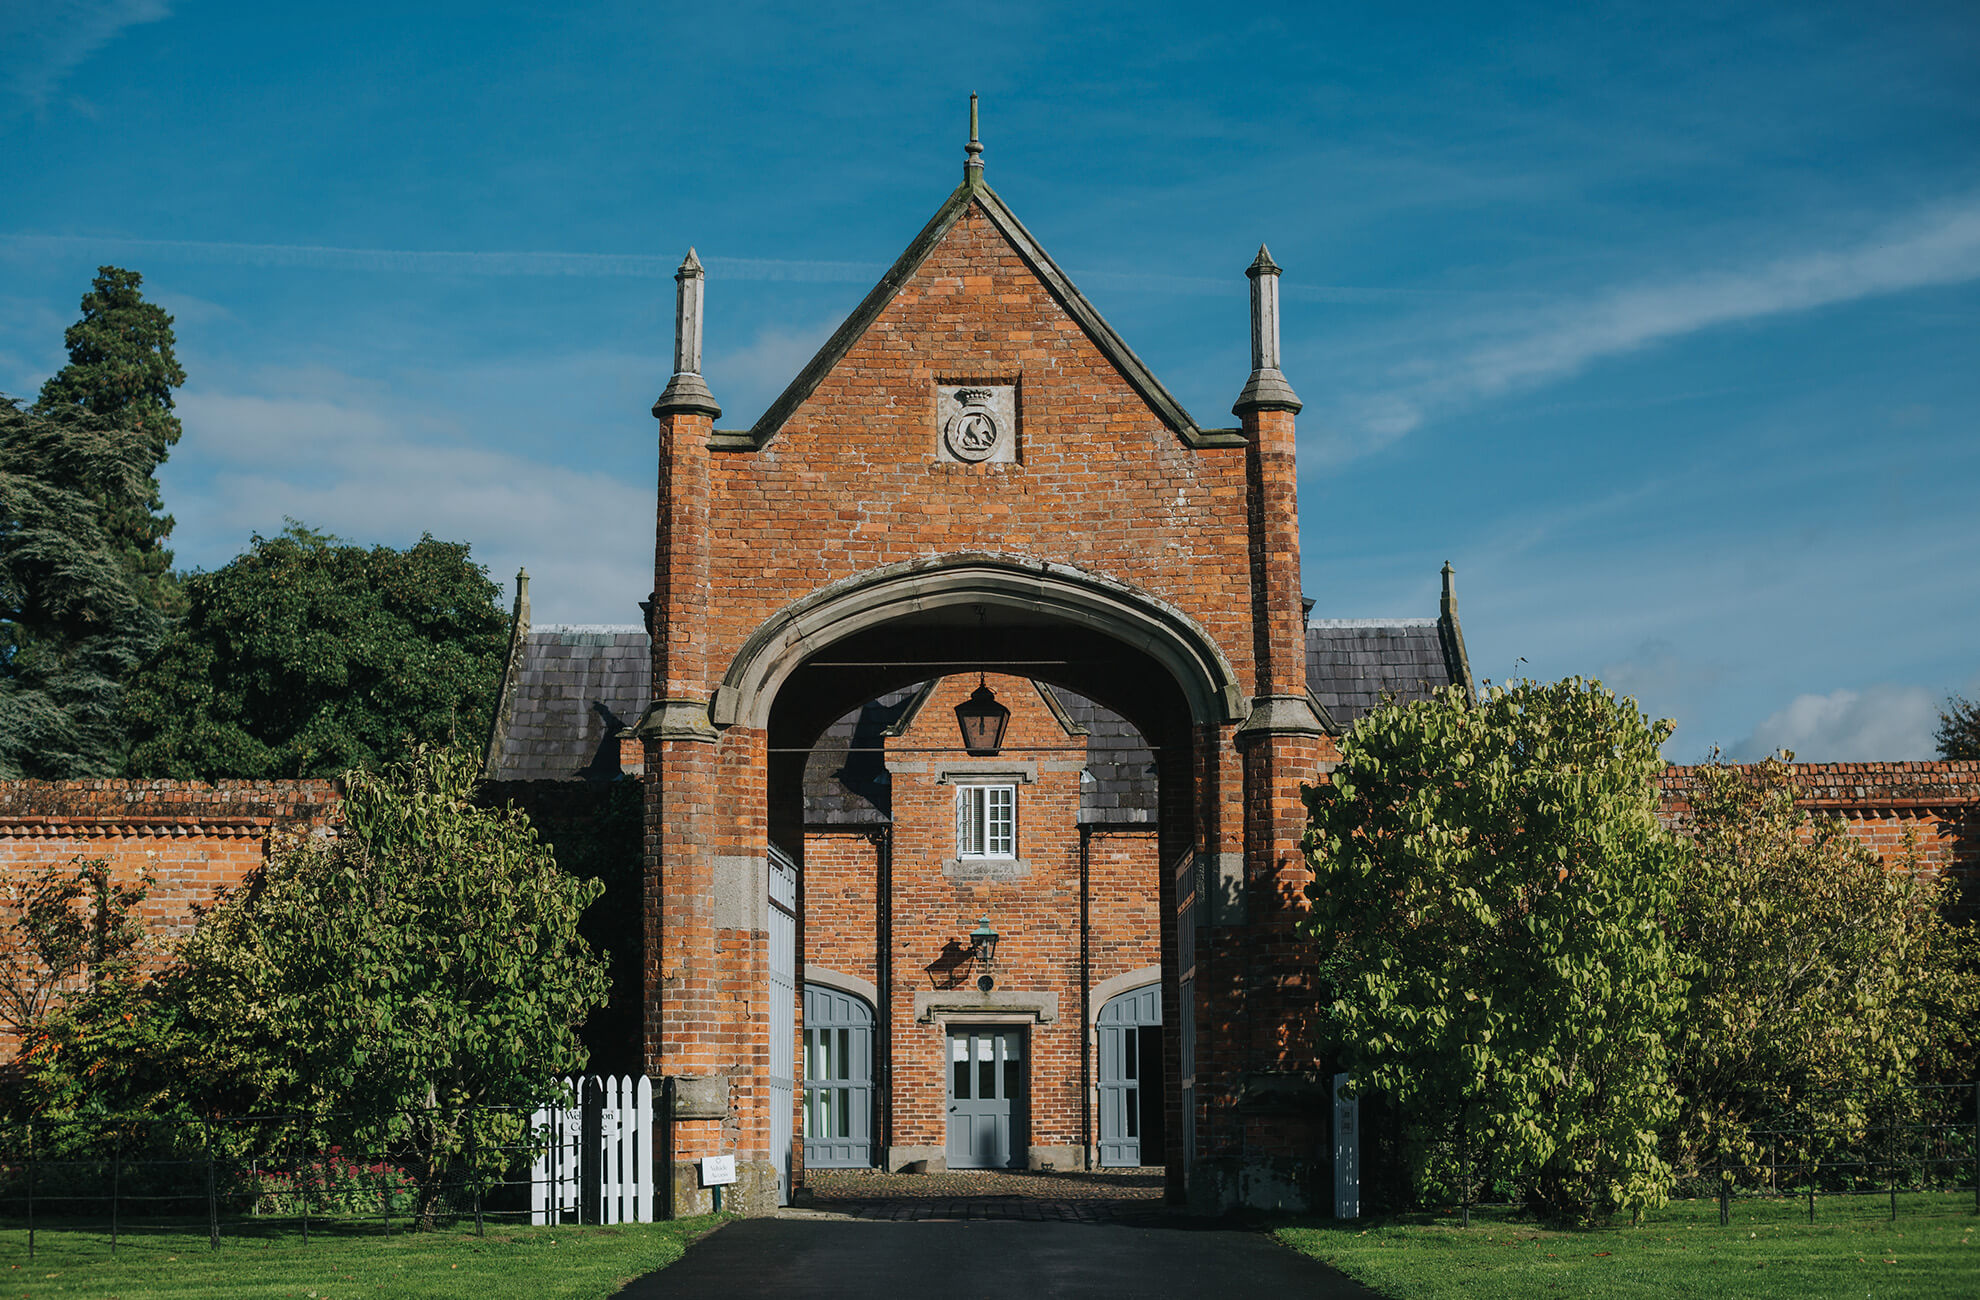 Wedding guests can stay in on site accommodation after your wedding at Combermere Abbey